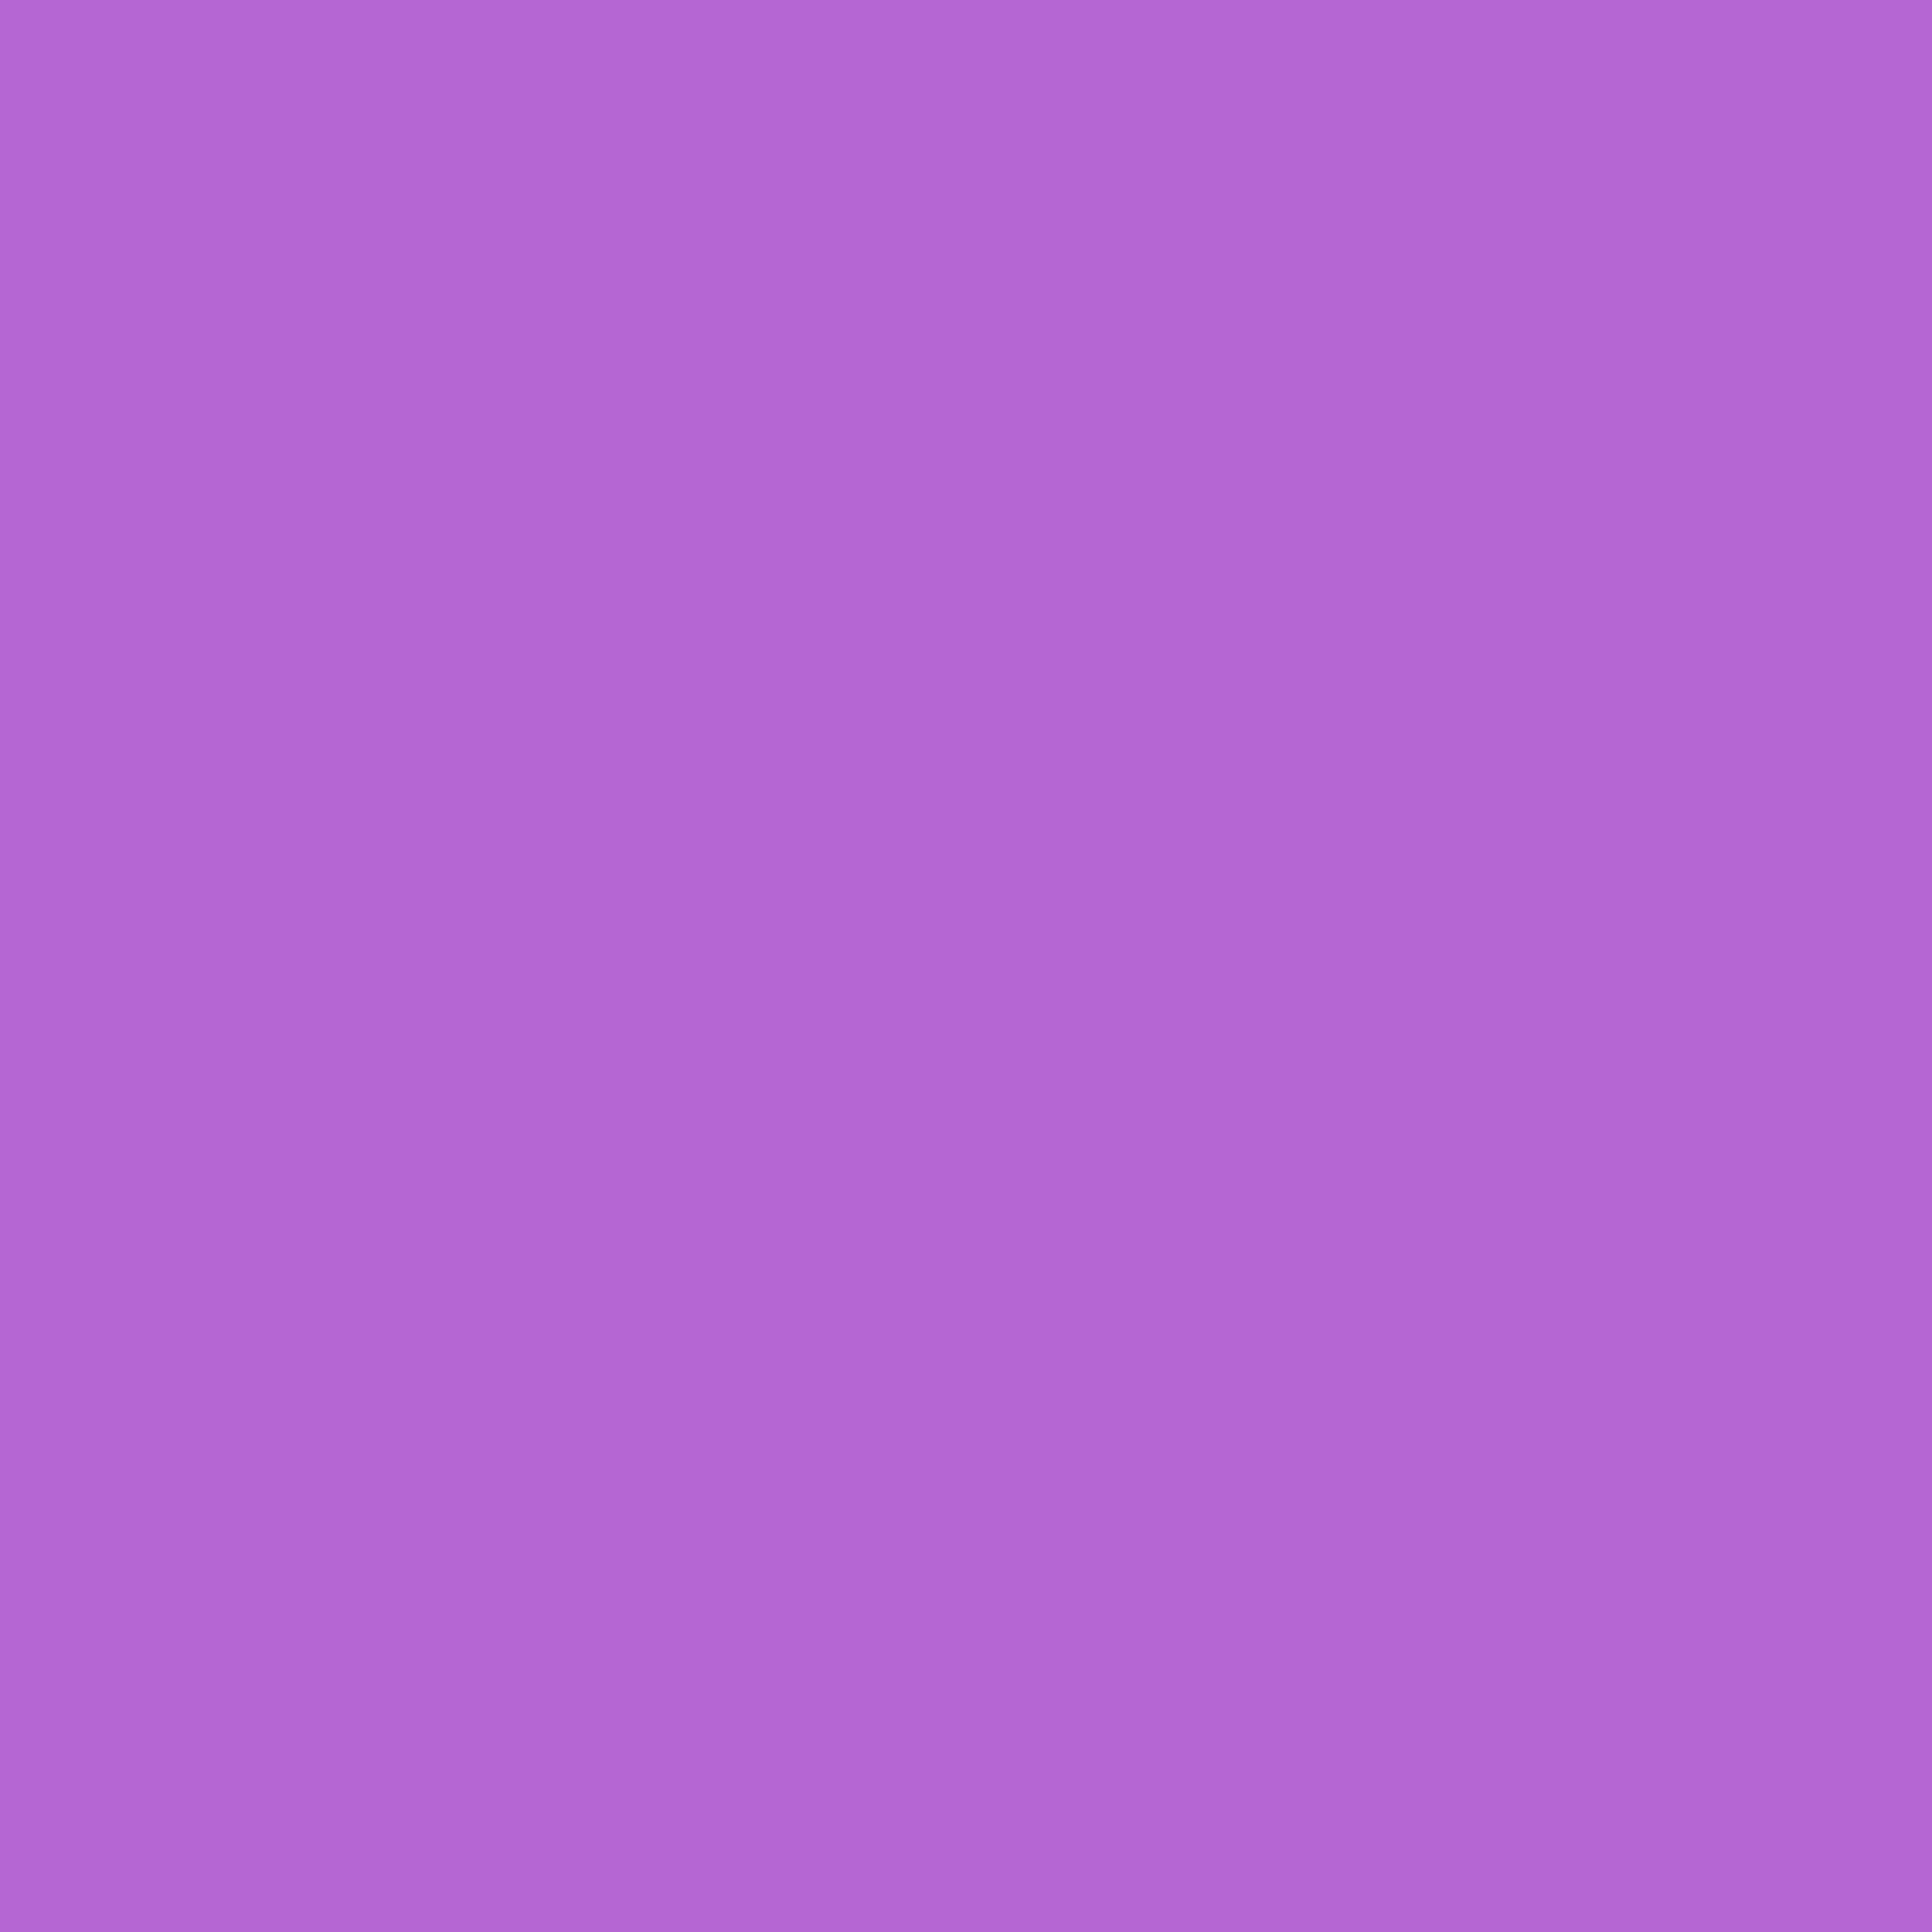 2048x2048 Rich Lilac Solid Color Background